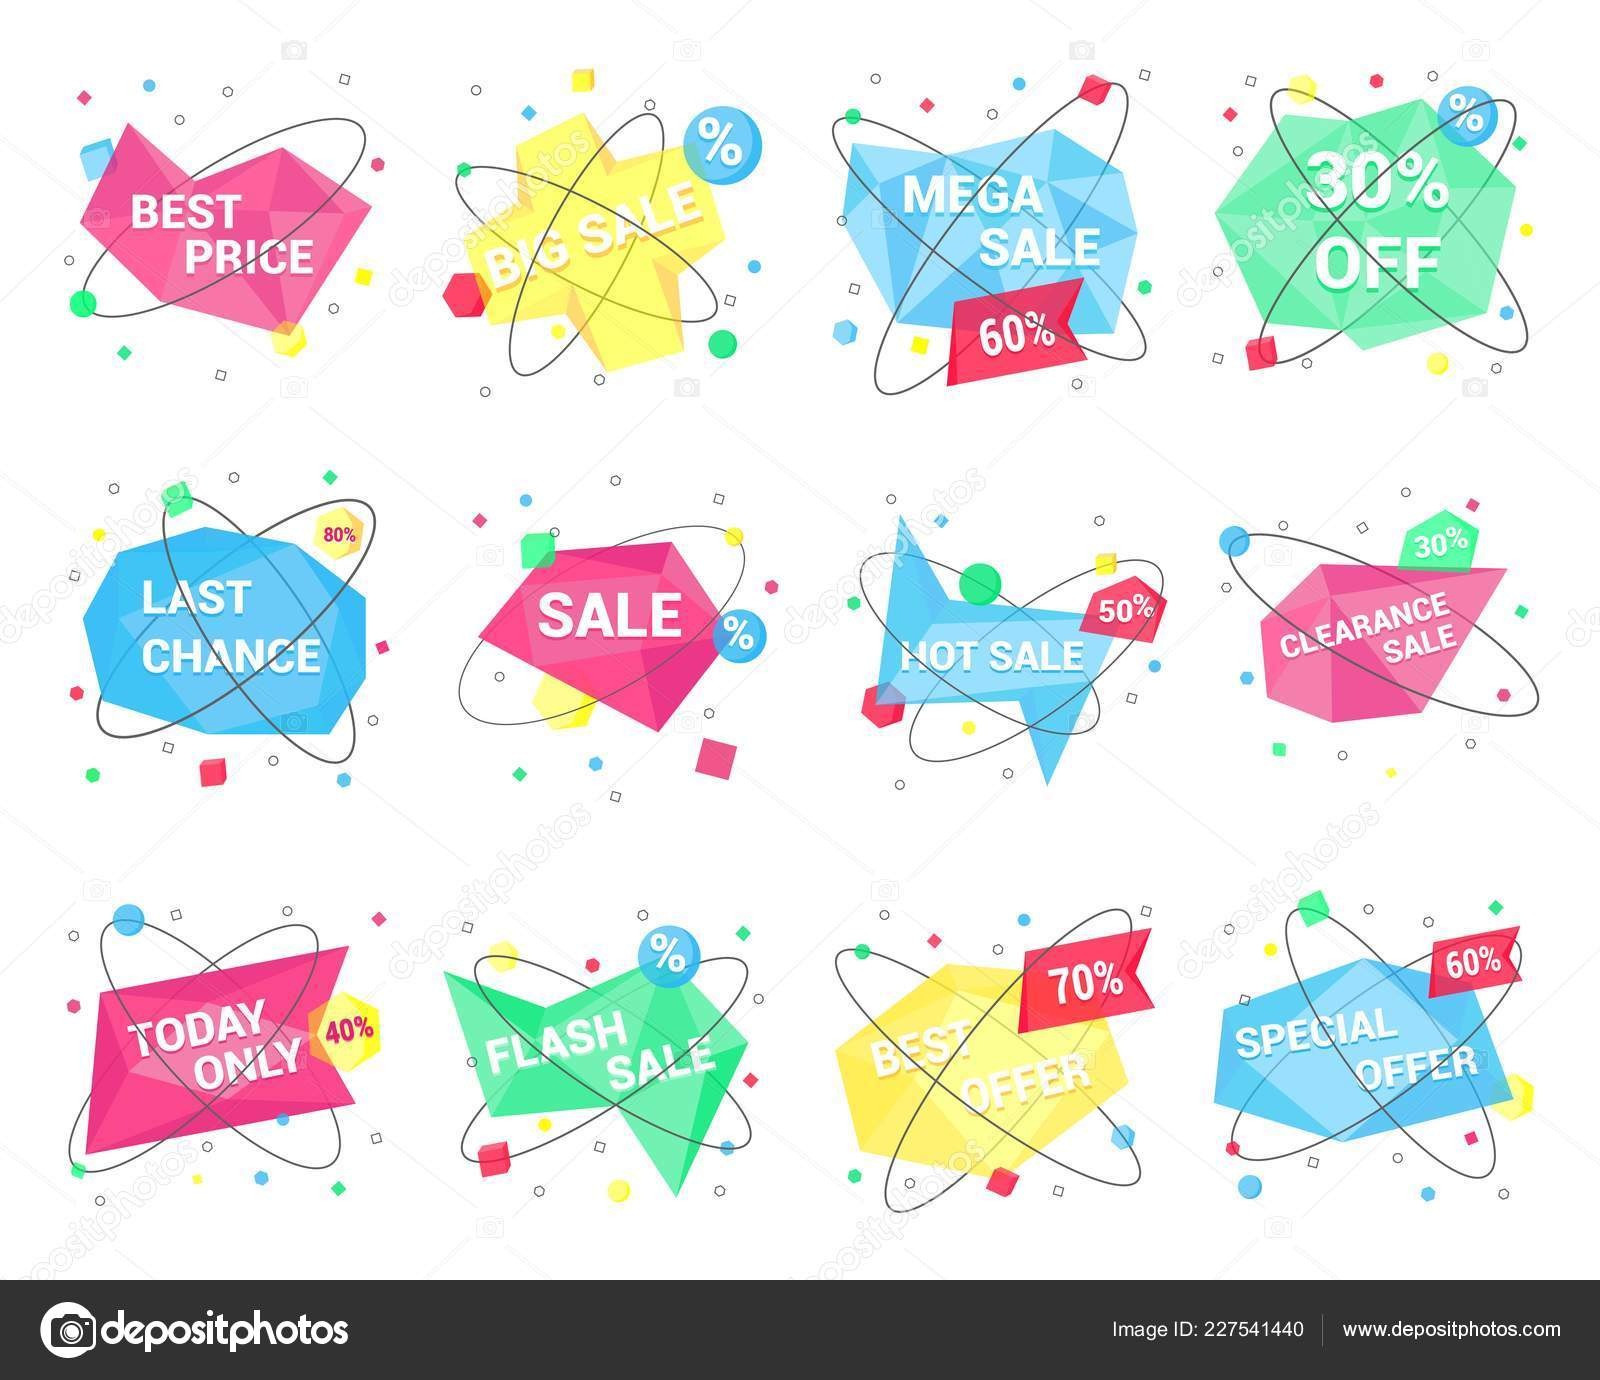 2ad2a6d4ec73b 12 Sale geometric banner flat style design vector illustration set isolated  on white background. Sale text on geometric stone shape form with orbits  and ...